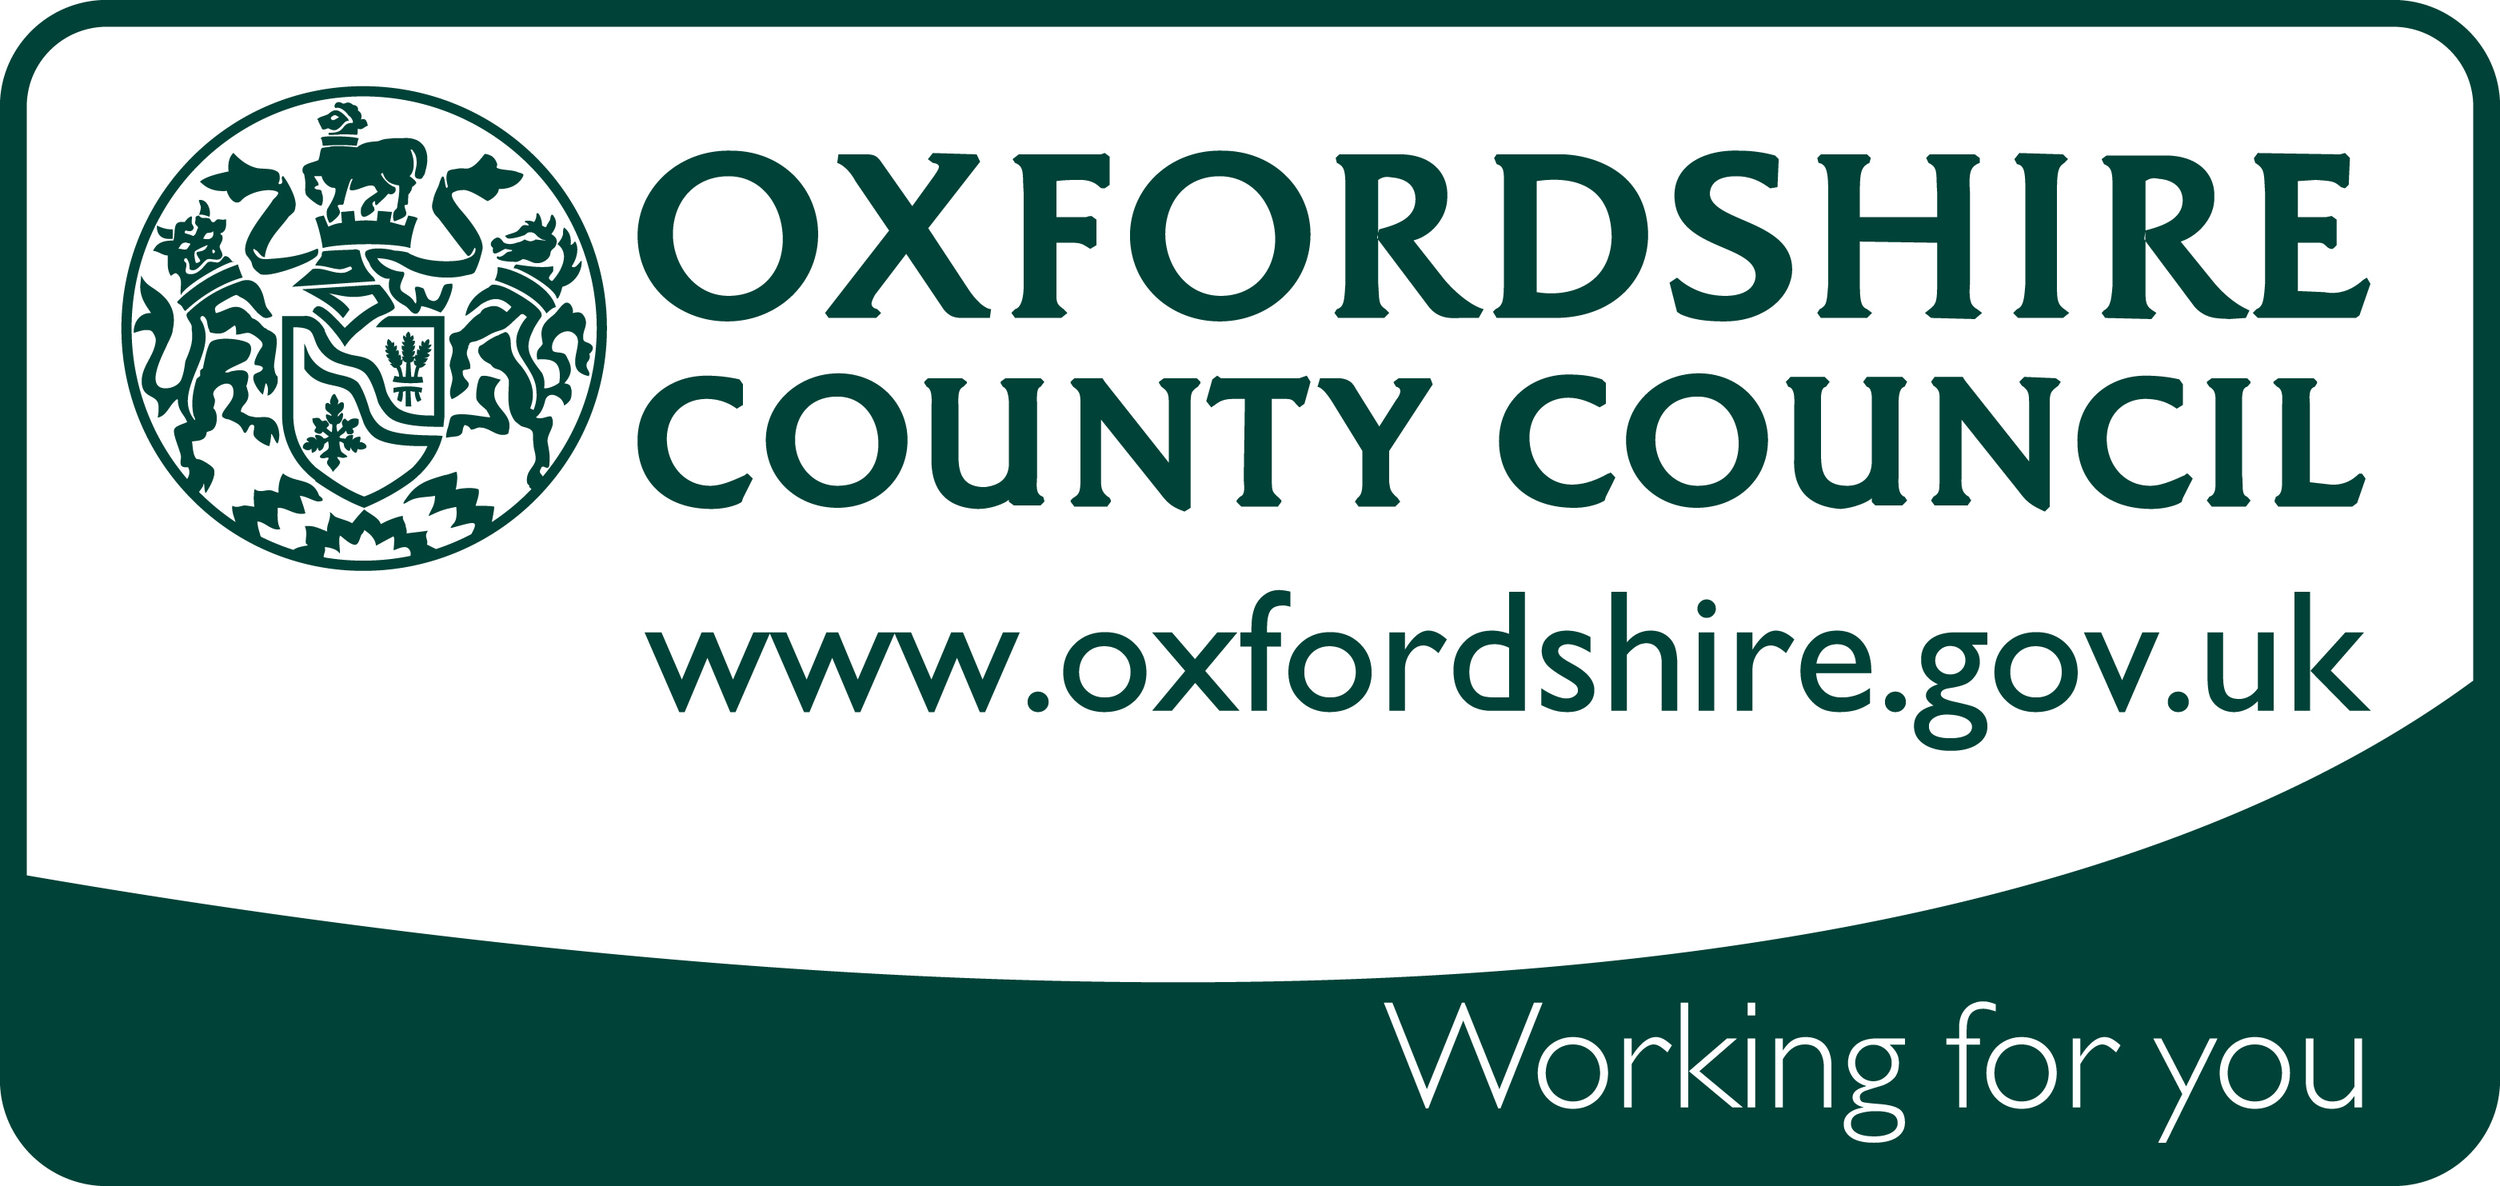 06 OXFORDSHIRE SOCIAL CARE ALT.jpg